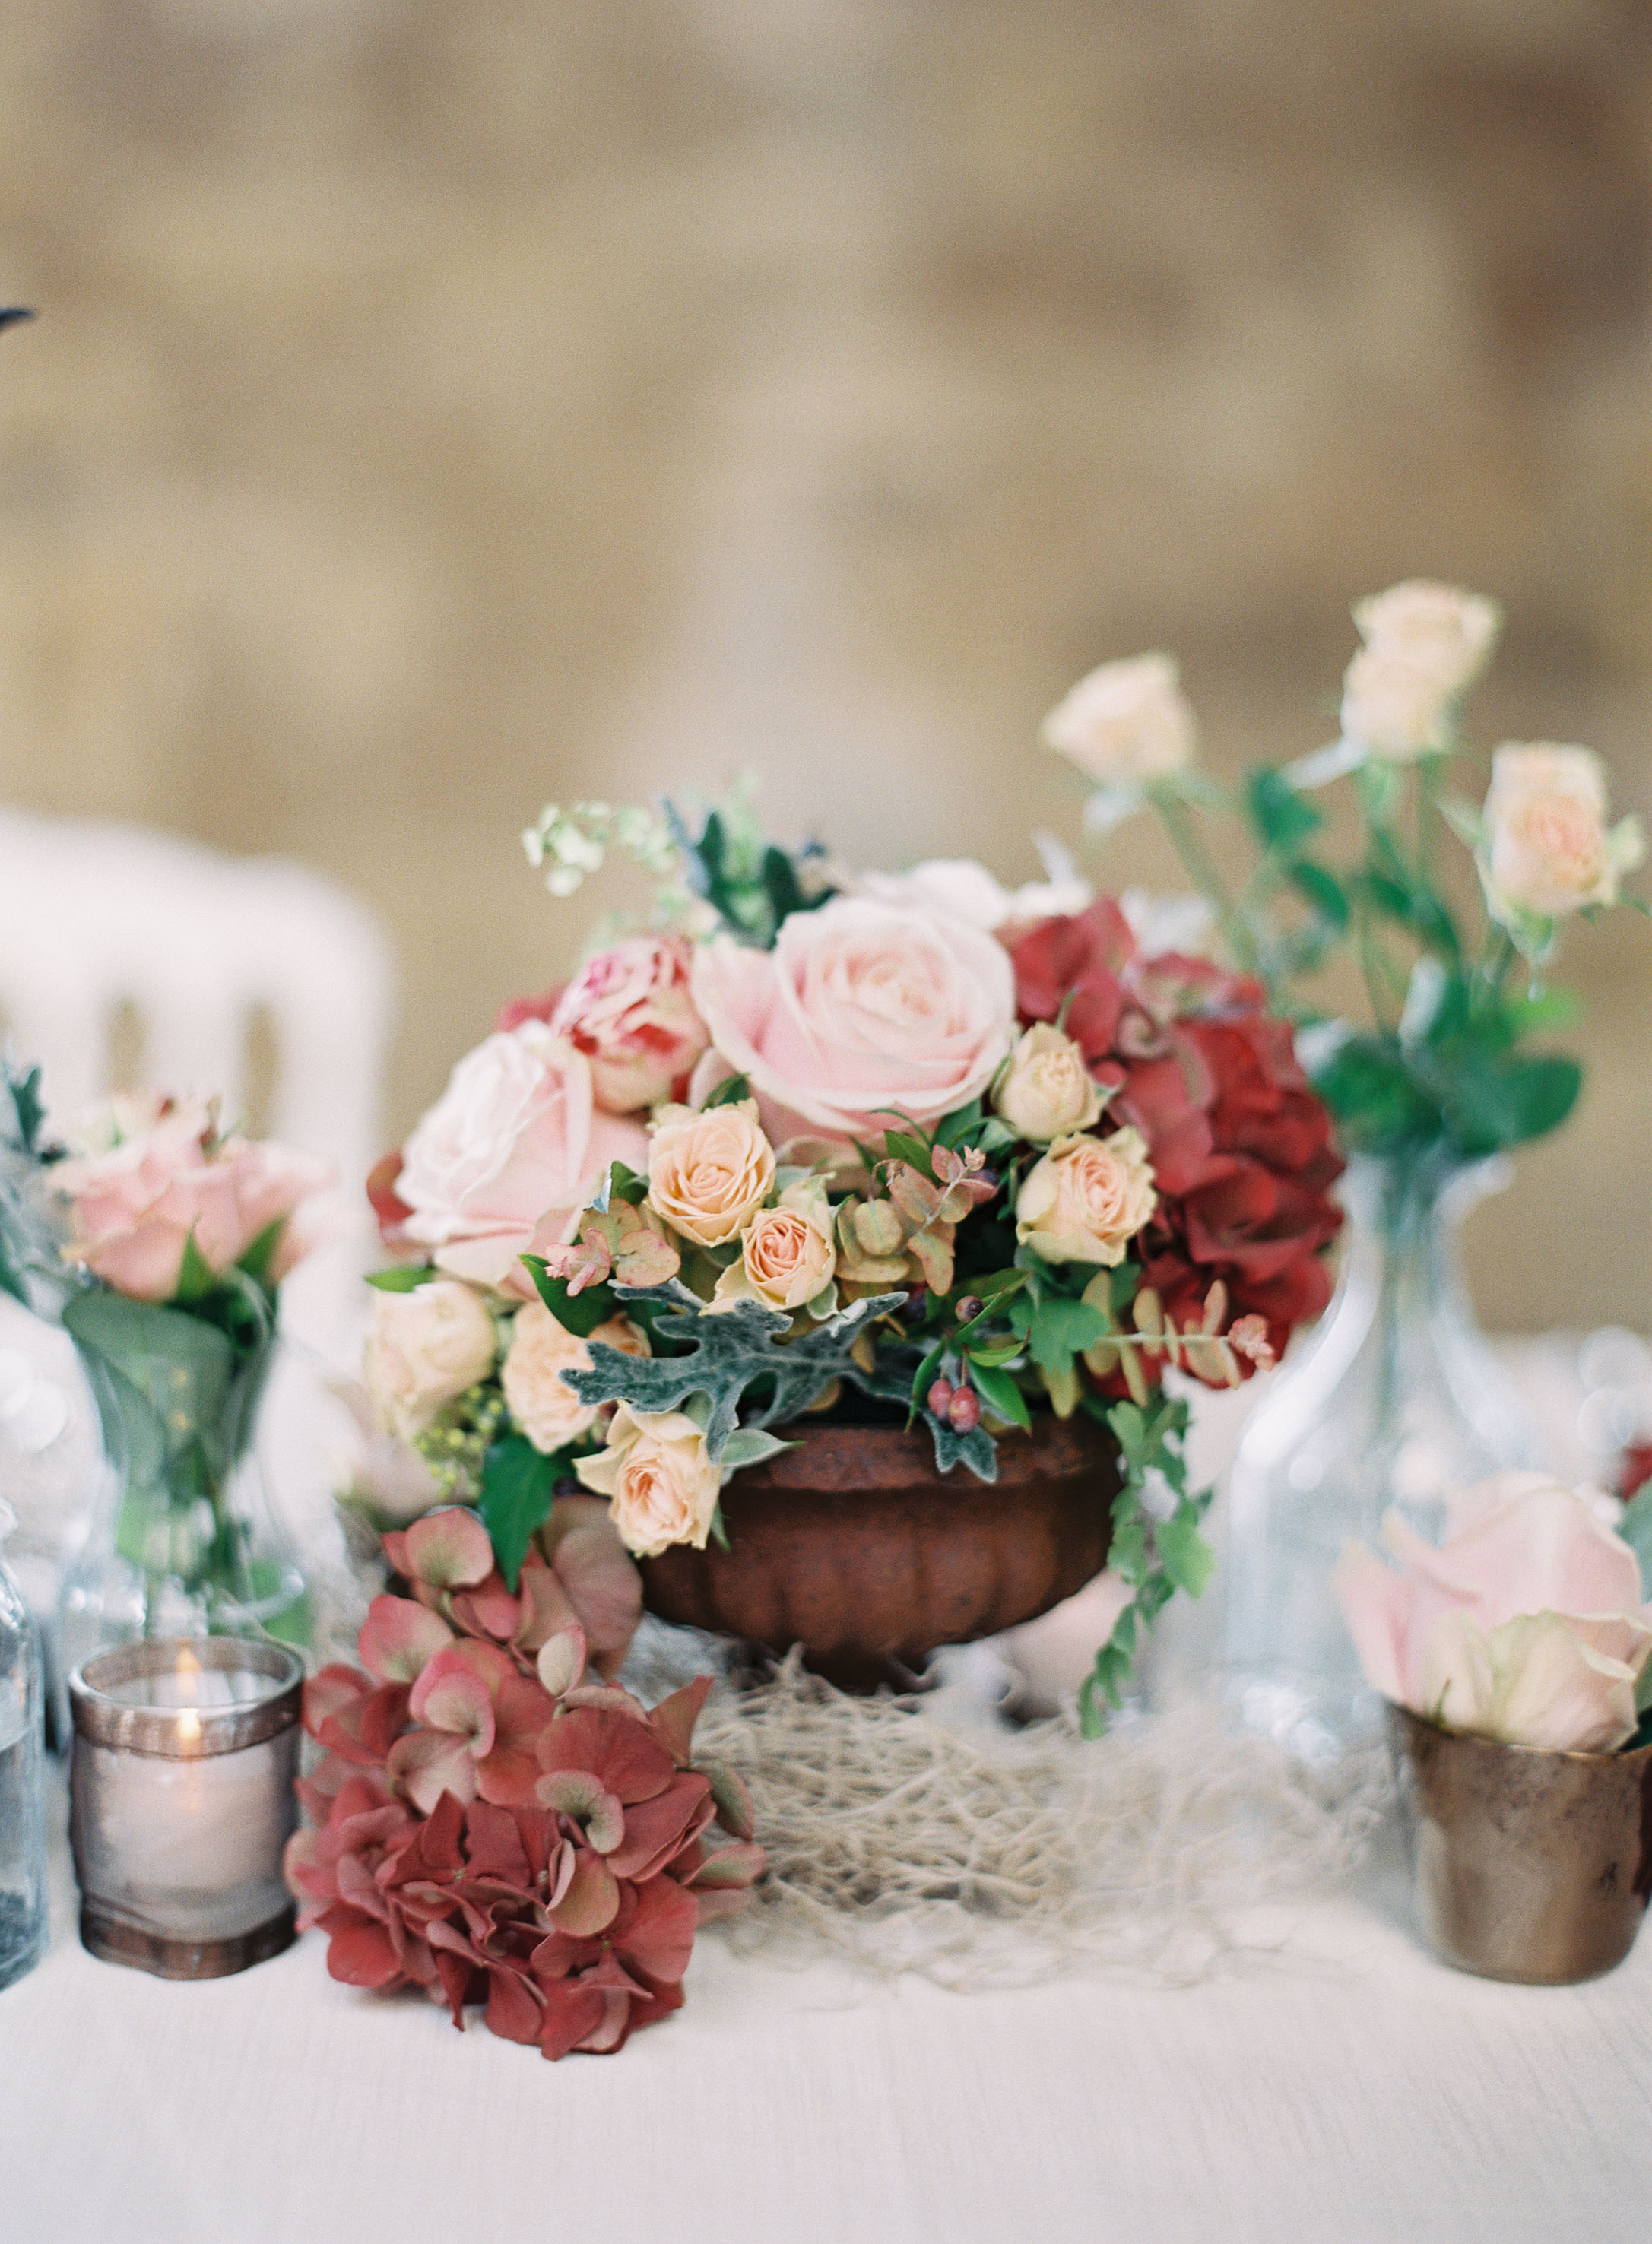 Rose and Hydrangea Cluster Centerpieces in Footed Bowls with Bud Vases